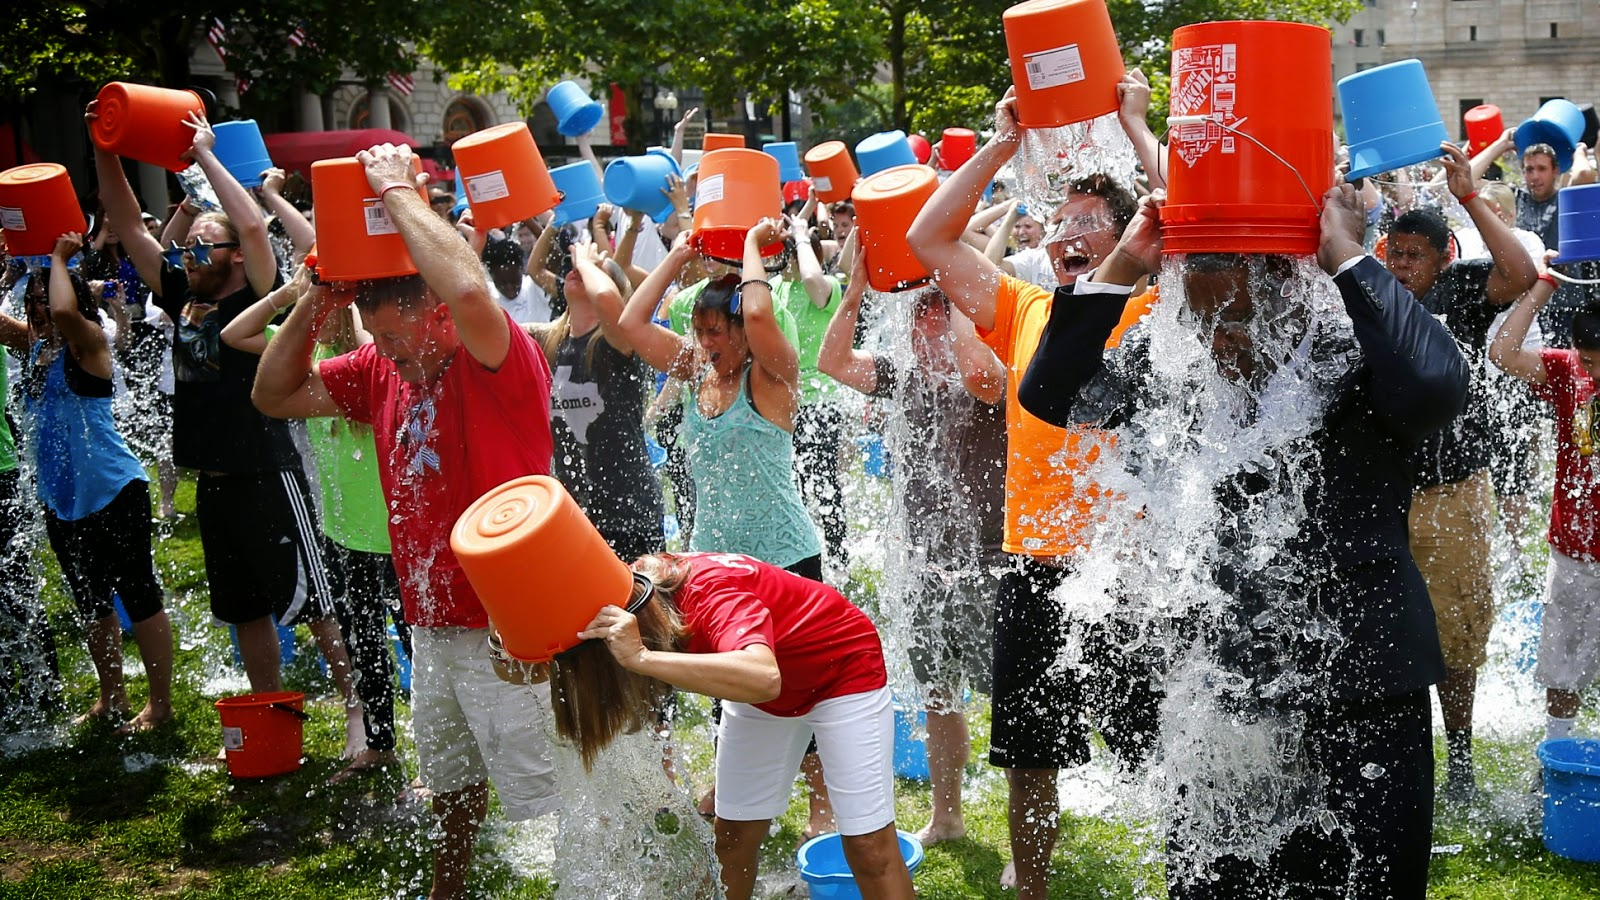 7 Marketing Lessons From The ALS Ice Bucket Challenge